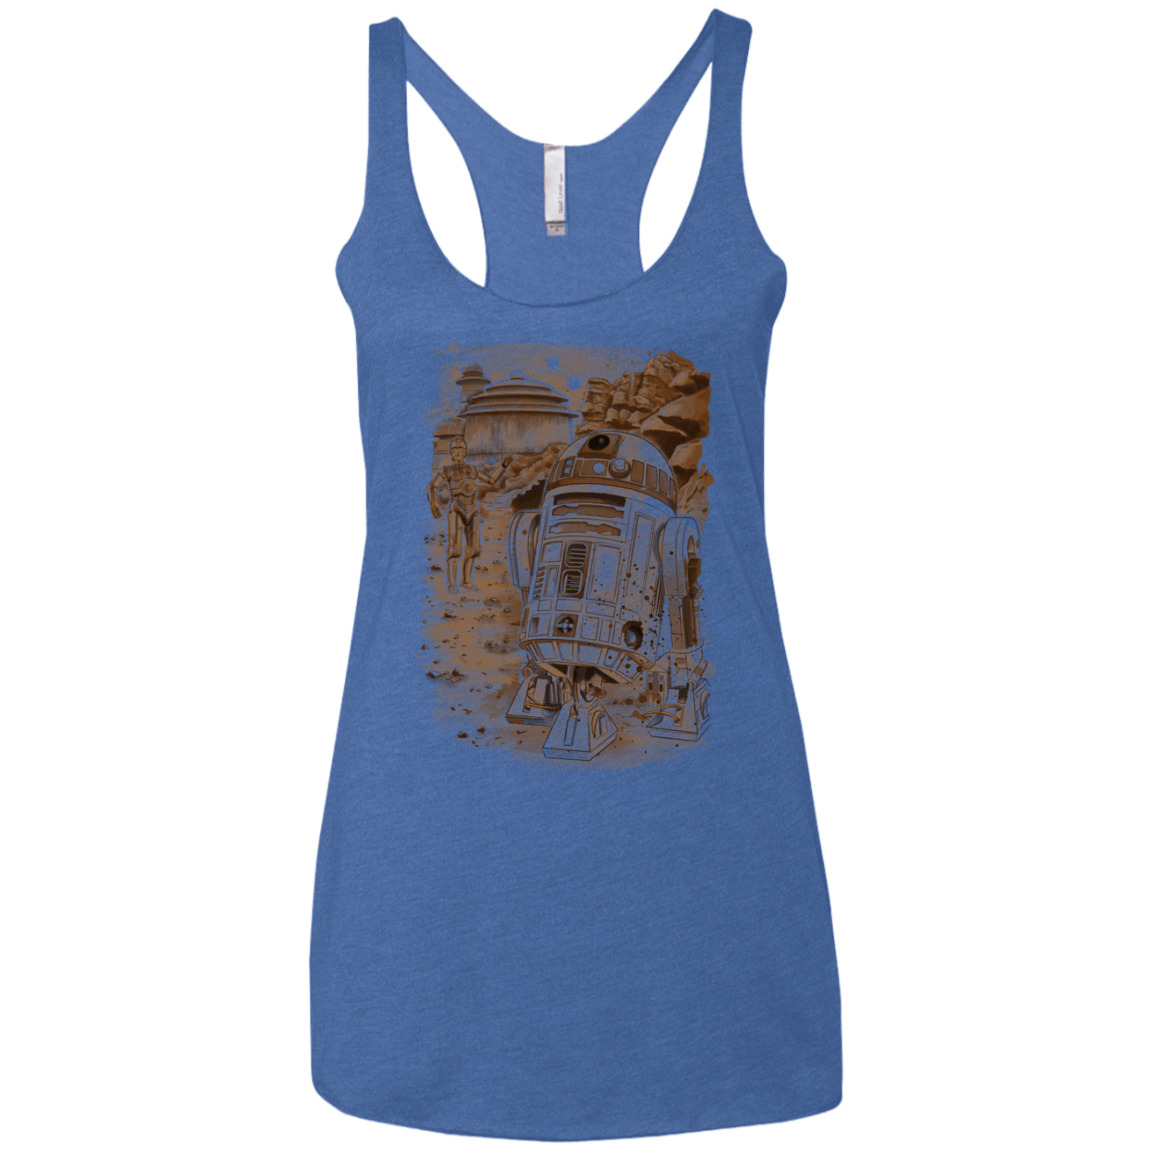 T-Shirts Vintage Royal / X-Small Mission to jabba palace Women's Triblend Racerback Tank